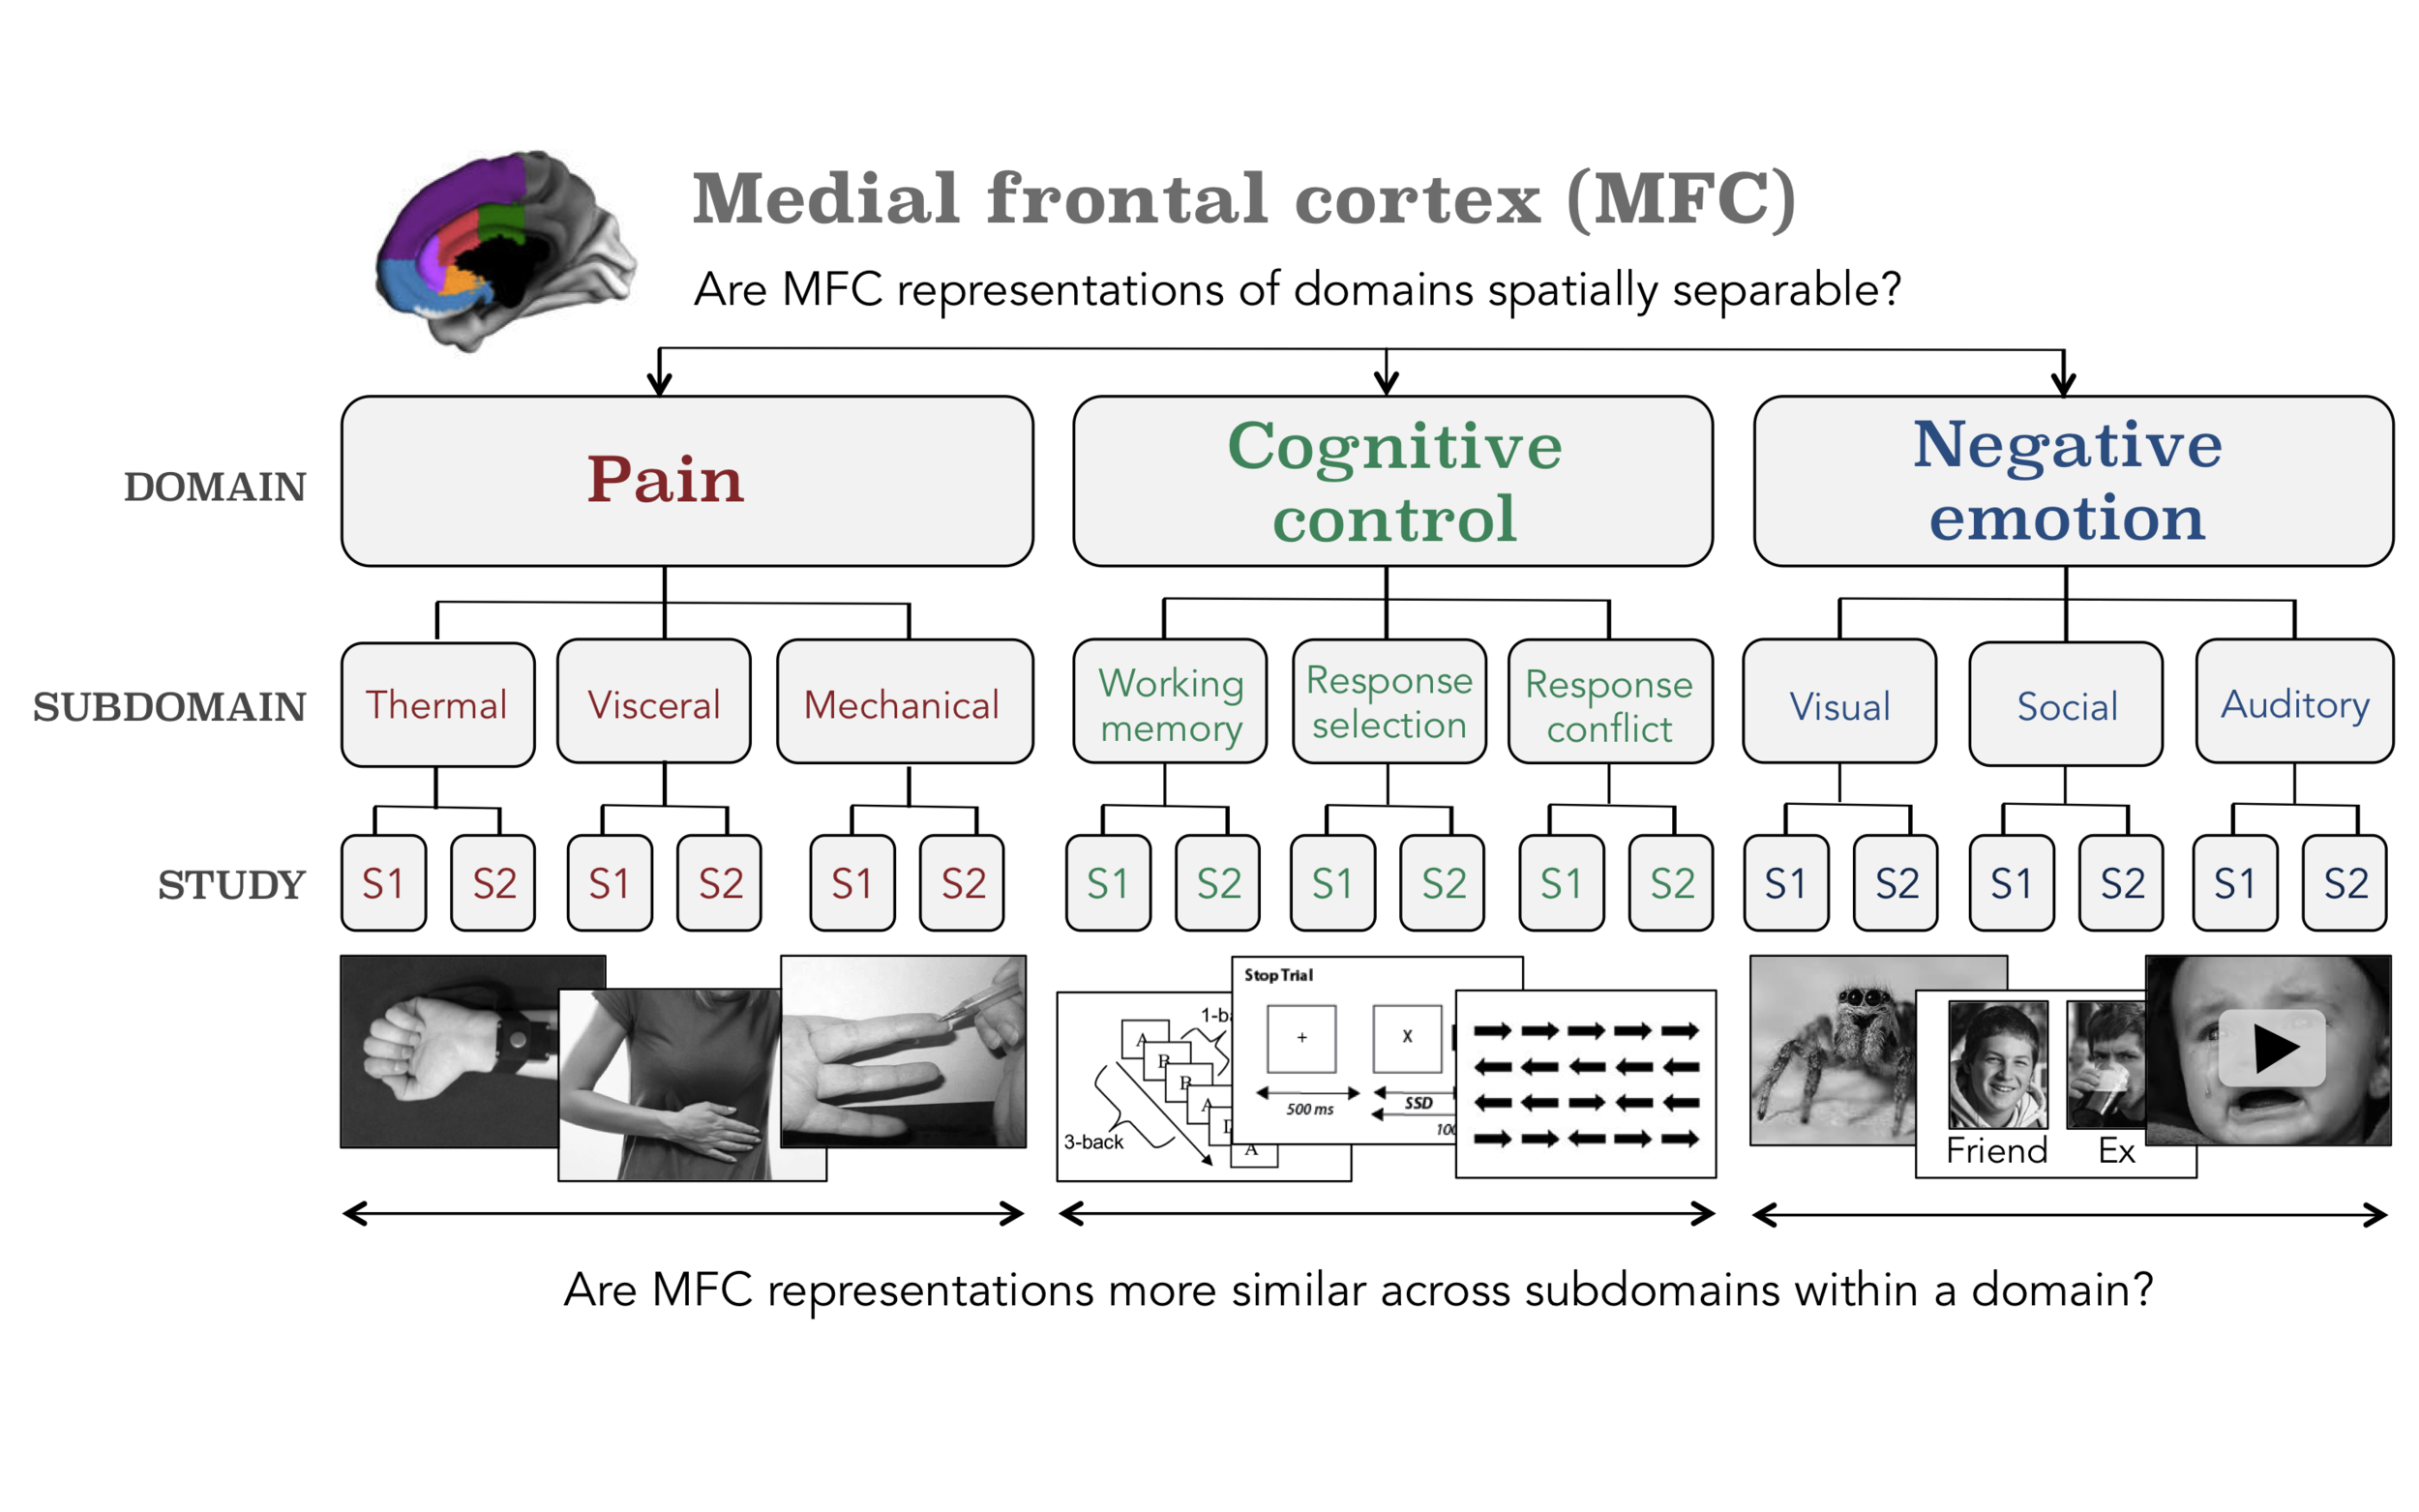 Figure A.  The hierarchical design employed by Kragel  et al.  compares the similarity of activation patterns in the medial frontal cortex (MFC) between subjects within two studies (S1 and S2), studies within subdomains, and subdomains within domains. The anatomical parcellation from Kragel  et al.  illustrates how the MFC was split into six sub-regions.